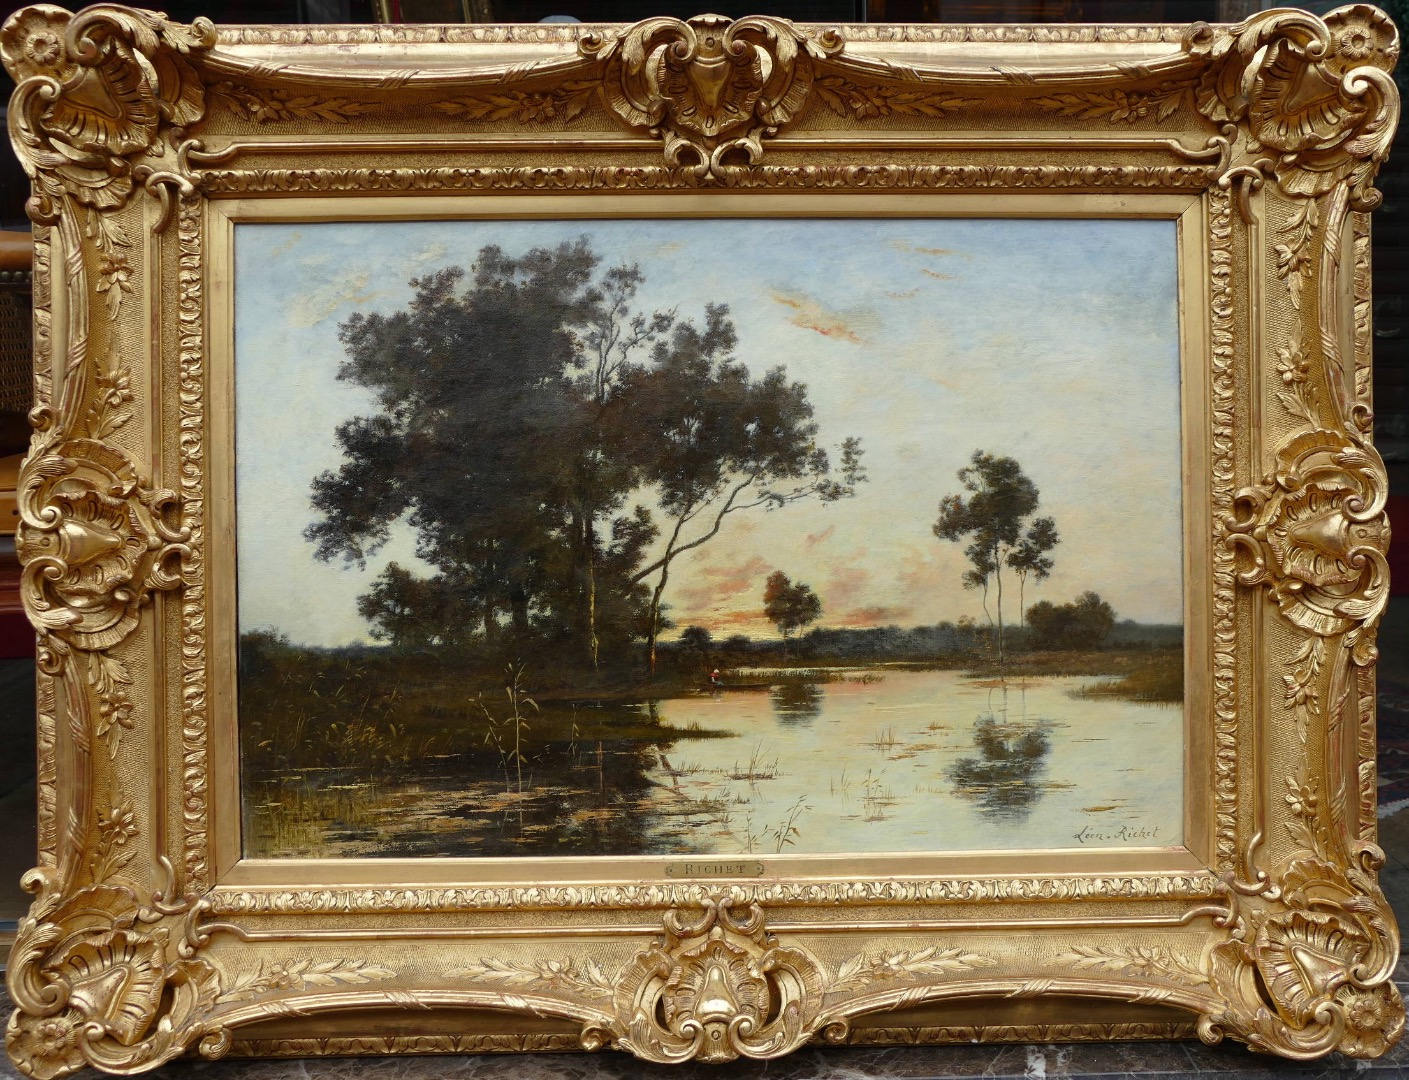 Richet Leon Painting XIX Barbizon School French Landscape 19th Oil On Canvas Signed